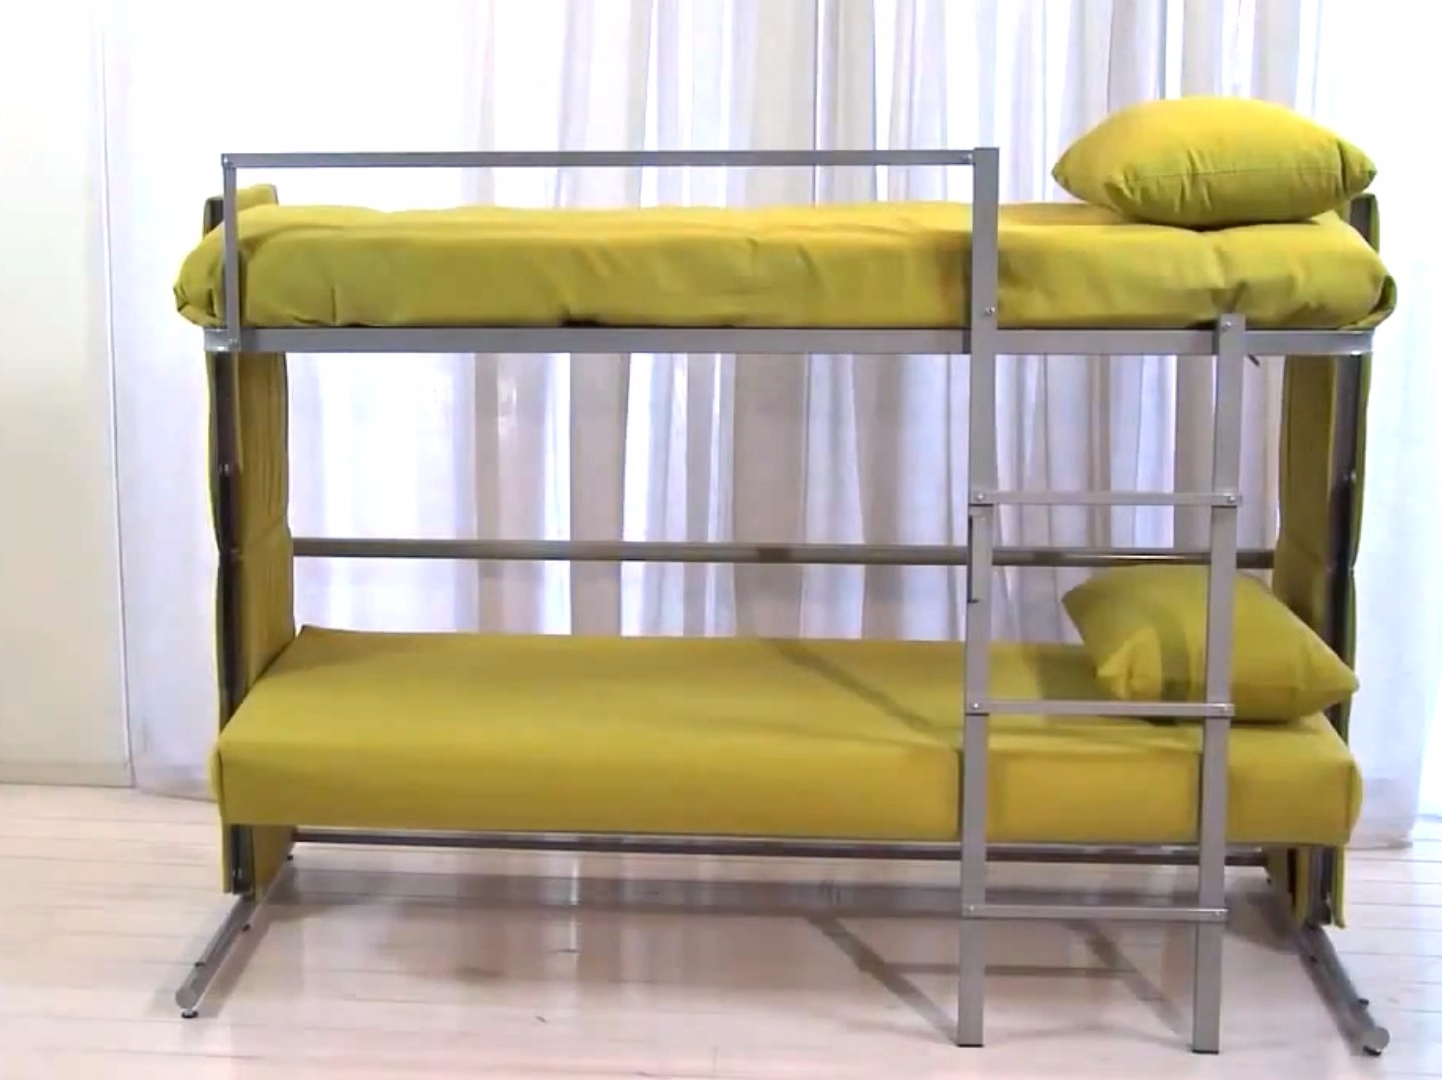 Most Up To Date Sofa Folds Out Into A Bunk Bed – Business Insider In Sofa Bunk Beds (View 8 of 15)